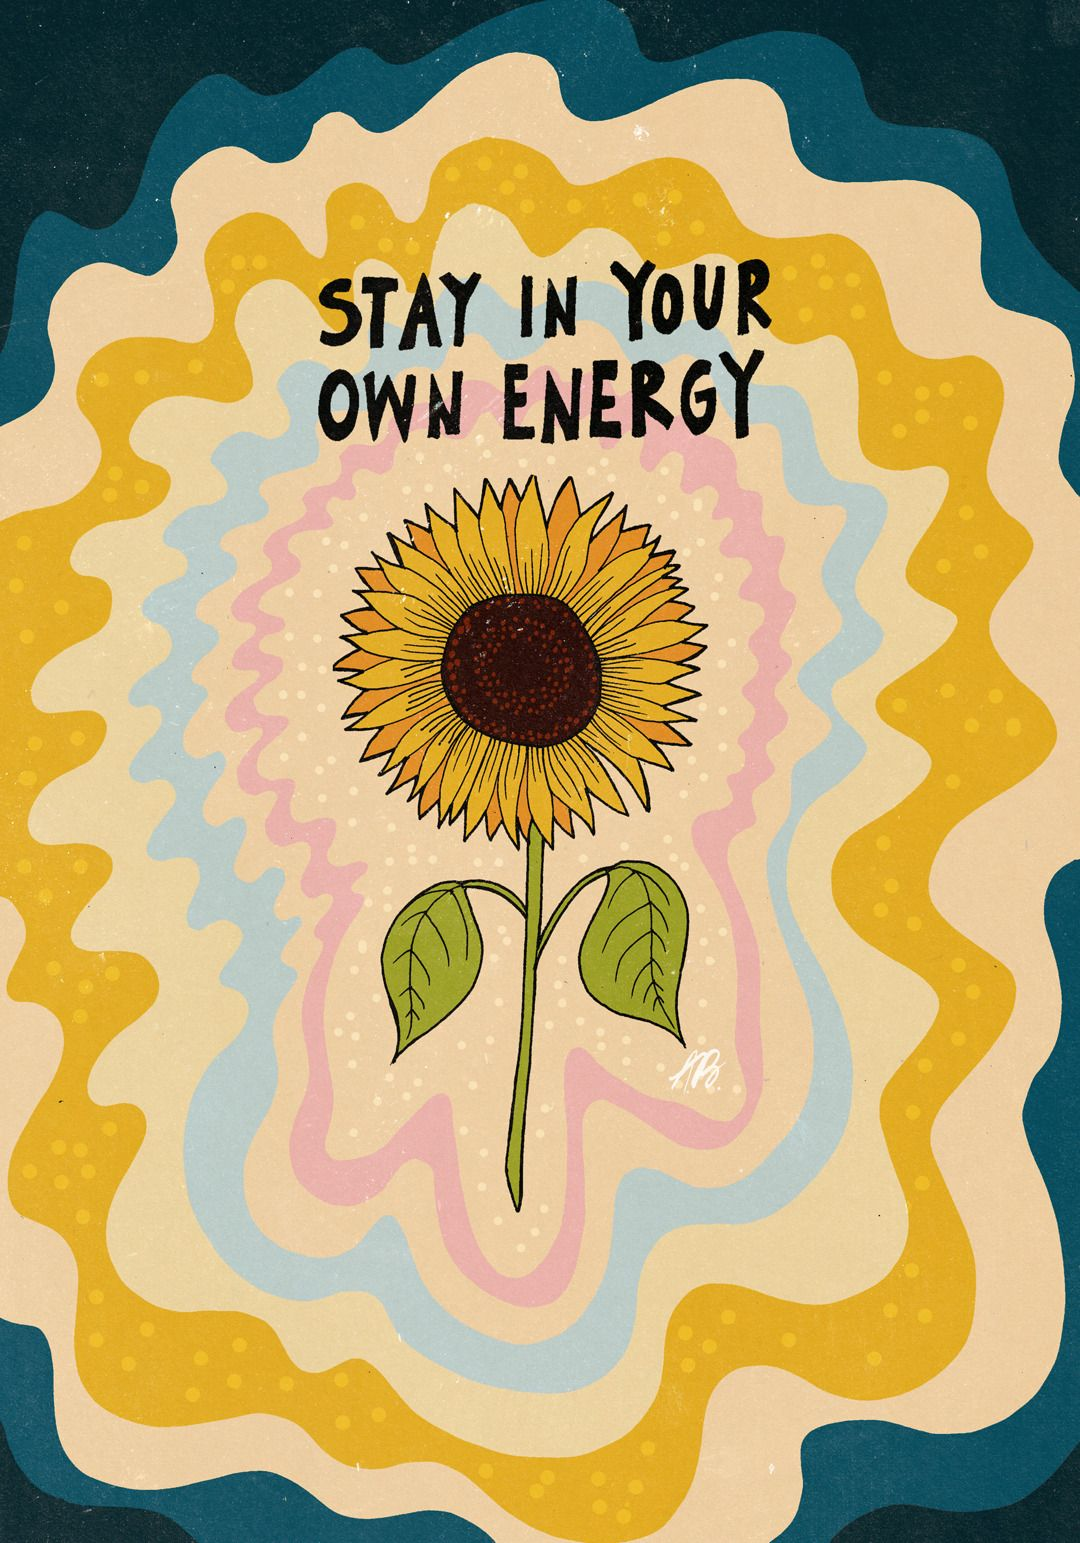 inkflowergarden: Stay in your own energy. on We Heart It